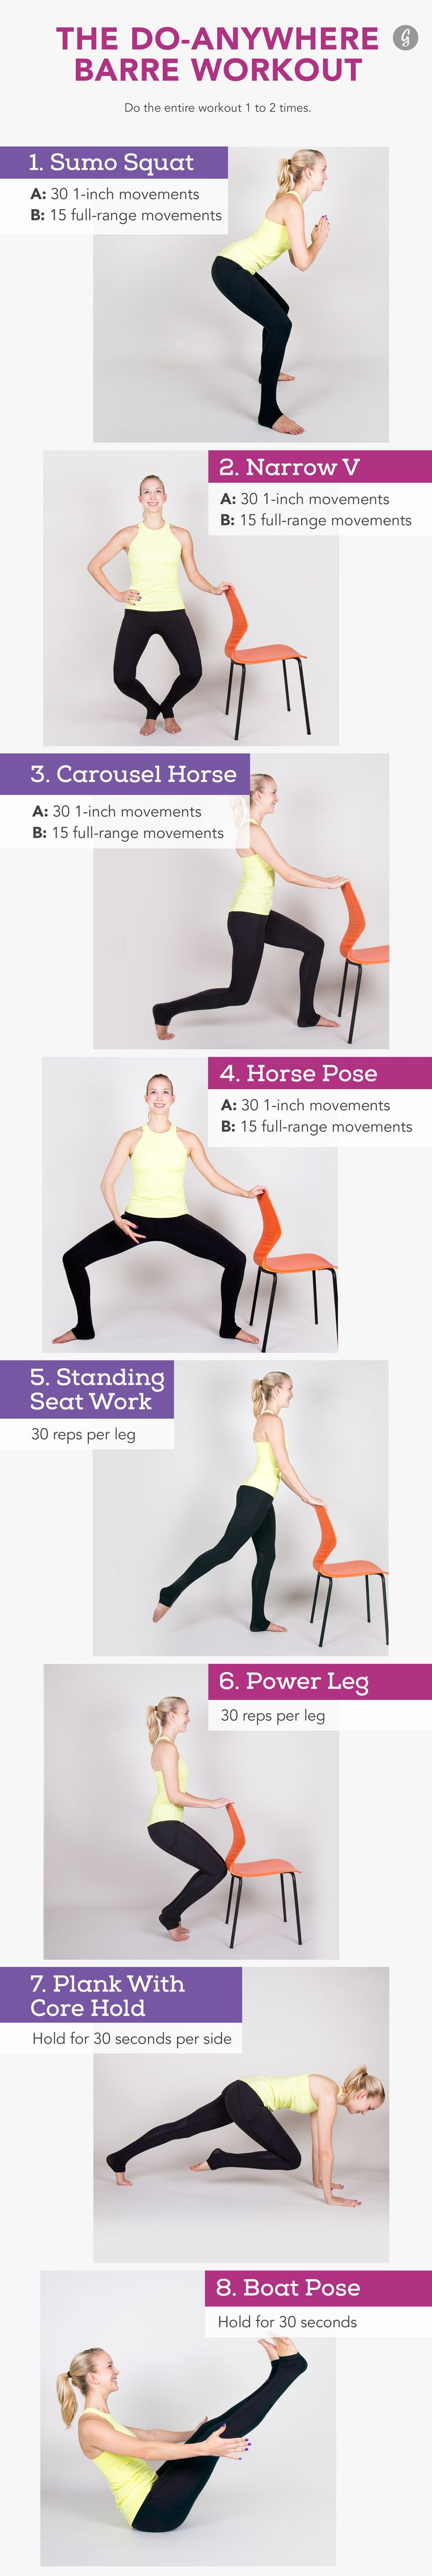 Skip the pricey studio classes—all you need is a chair and your own body weight for this workout #barre #workout http://greatist.com/move/home-barre-workout